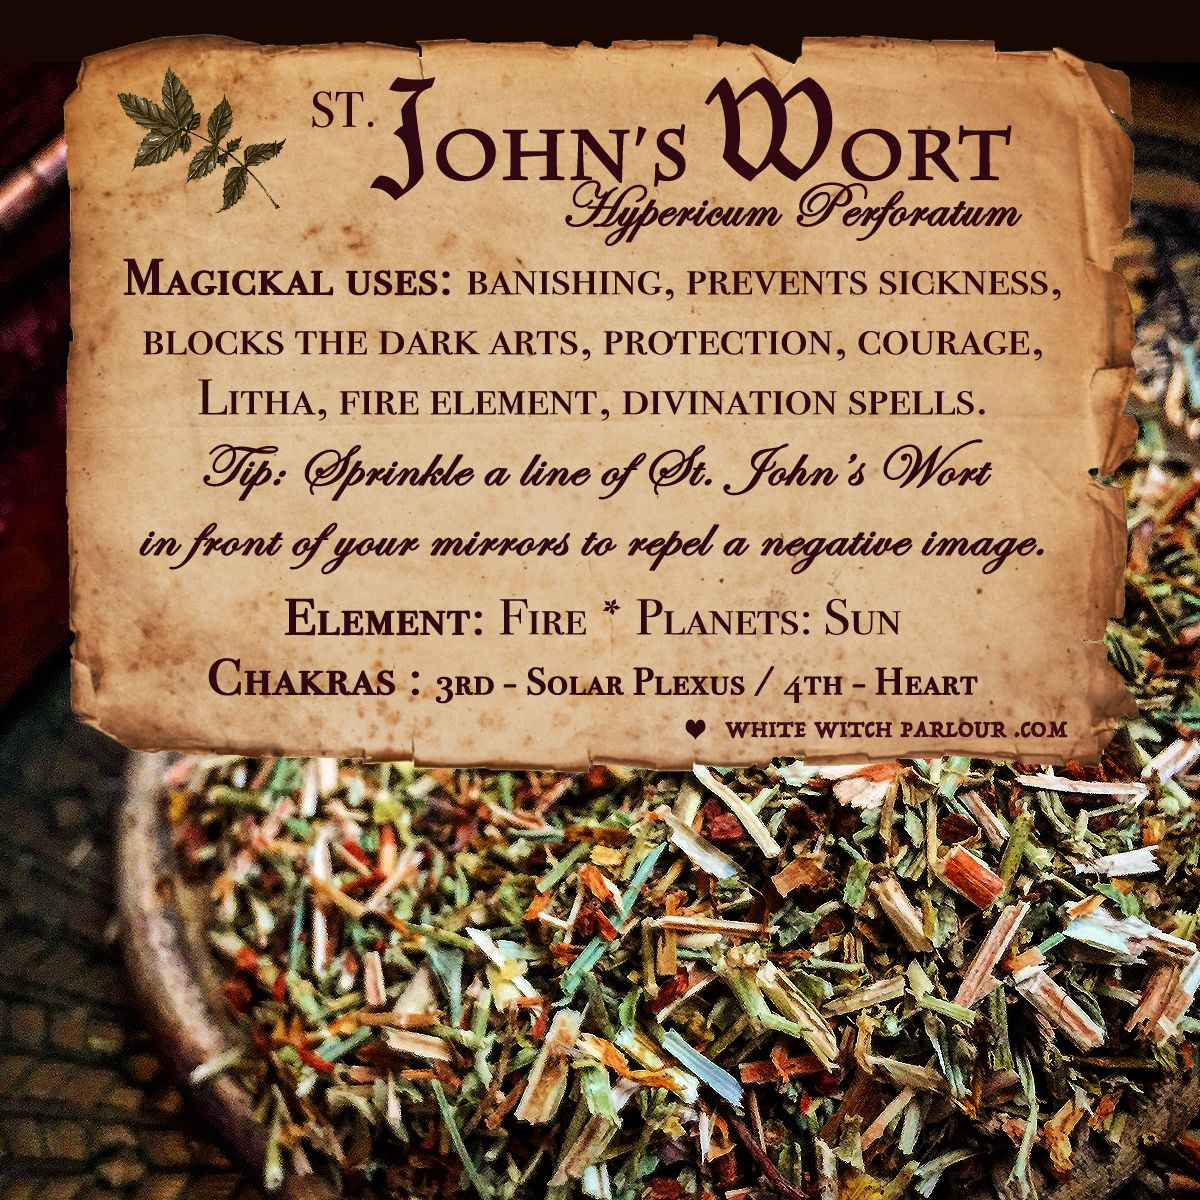 St. John's Wort, herbs, botanical, spells, witchcraft, occult, metaphysical, magick, enchanted, protection, witch, solar plexus, banishing, fire, apothecary. www.whitewitchparlour.com